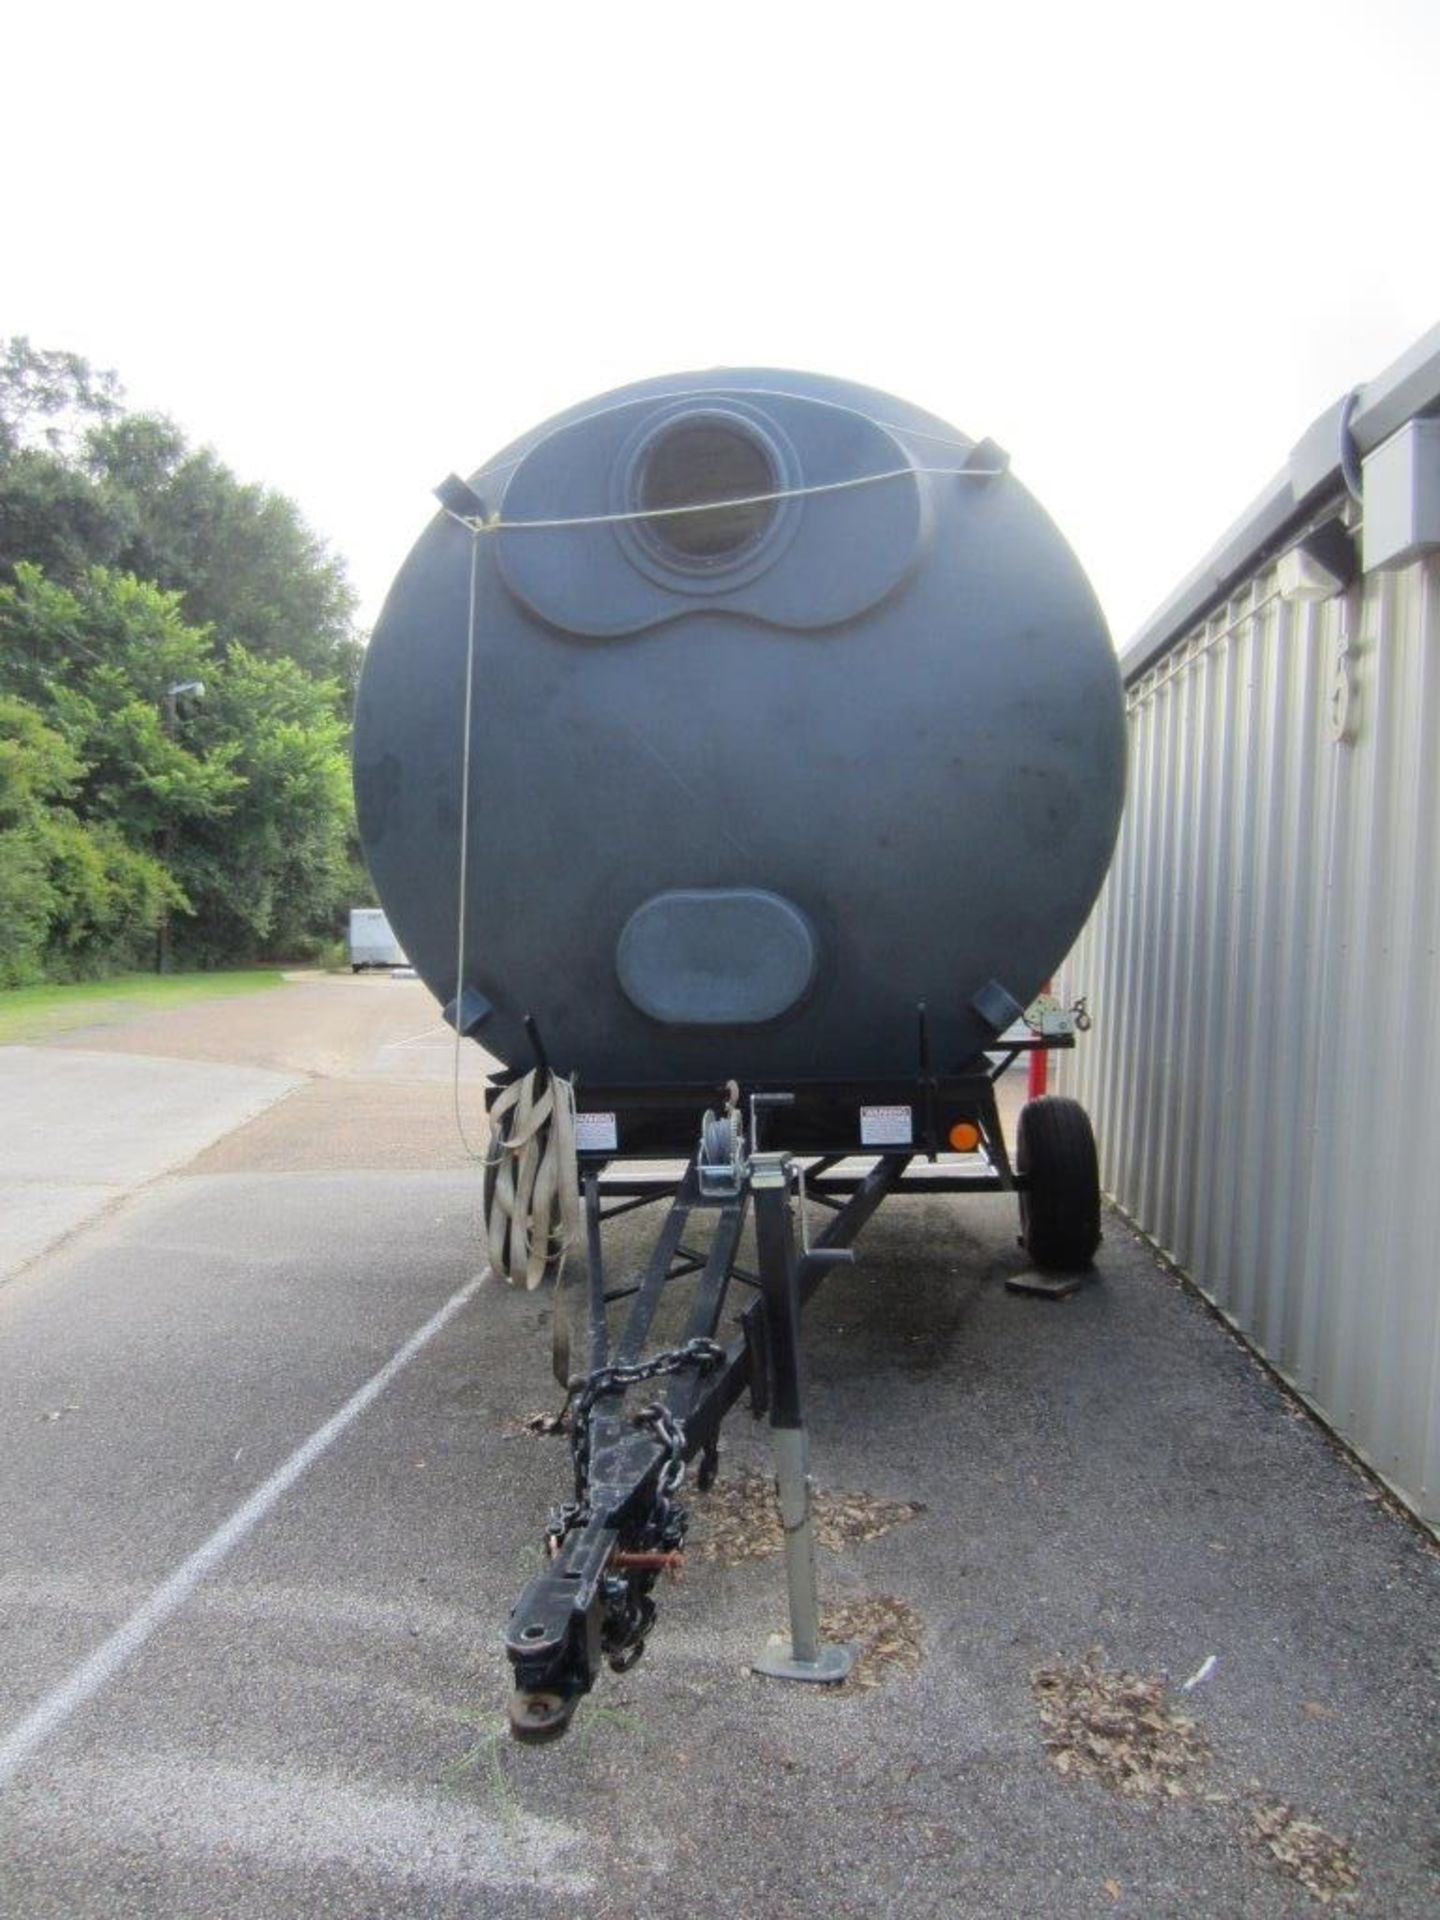 ADAMS SINGLE AXLE TRAILER WITH OIL DRUM (SUBJECT TO GROUP LOT 7) - Image 3 of 3